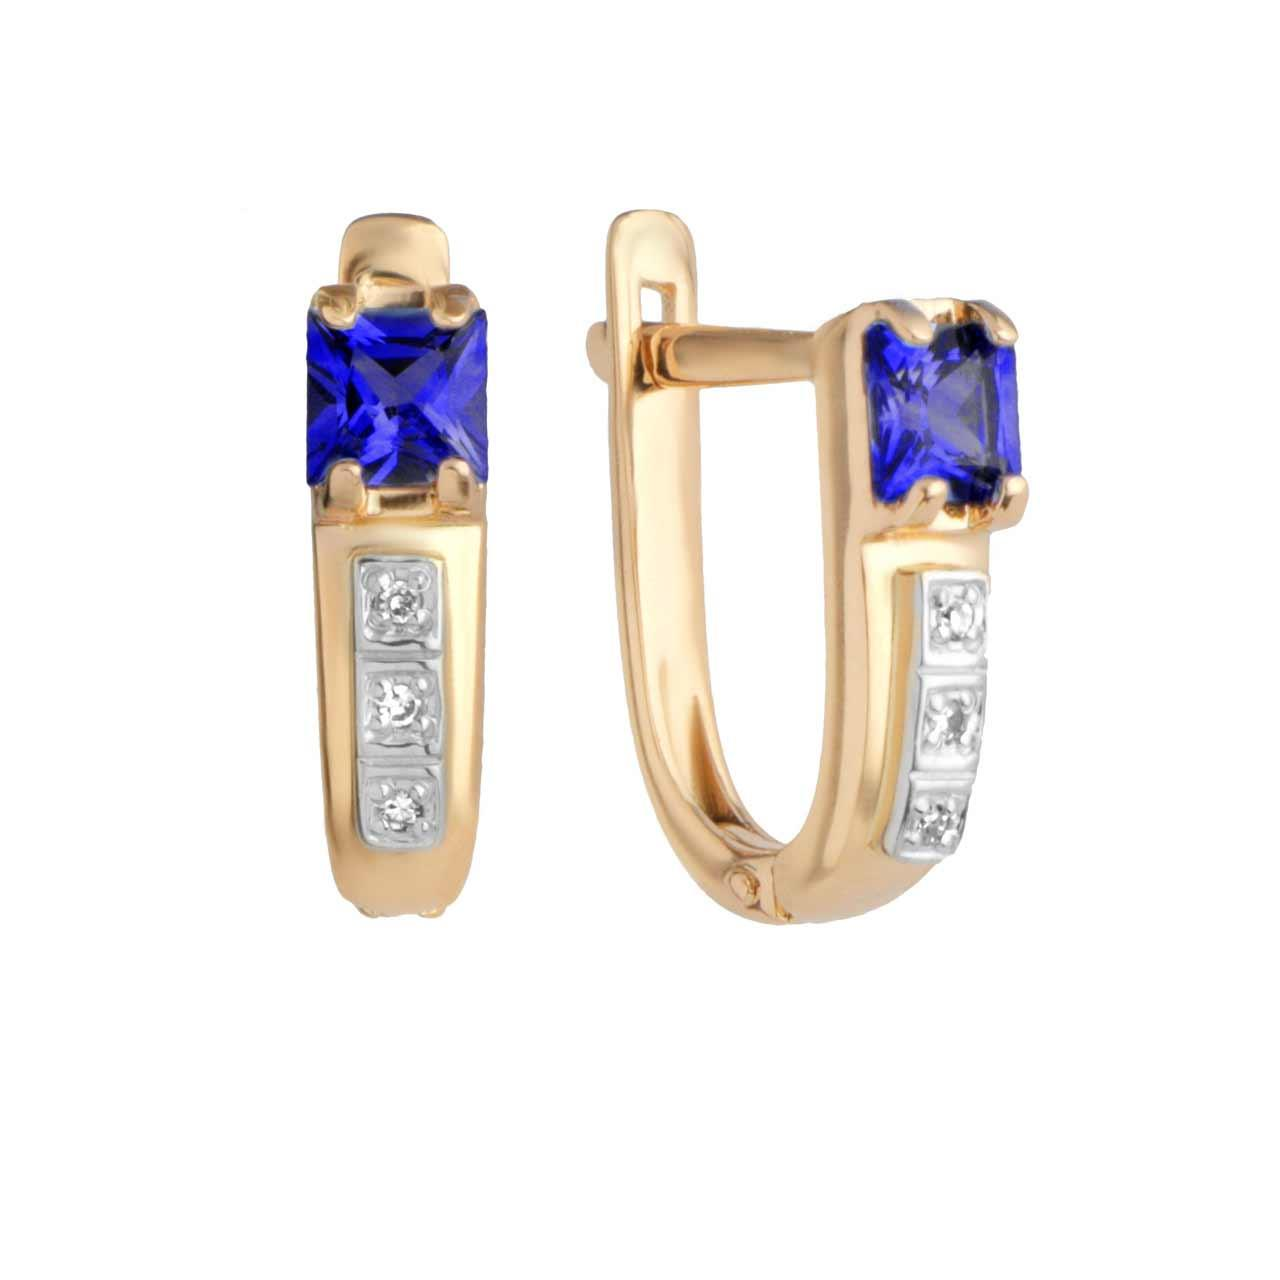 Princess Cut Sapphire and Diamond Earrings